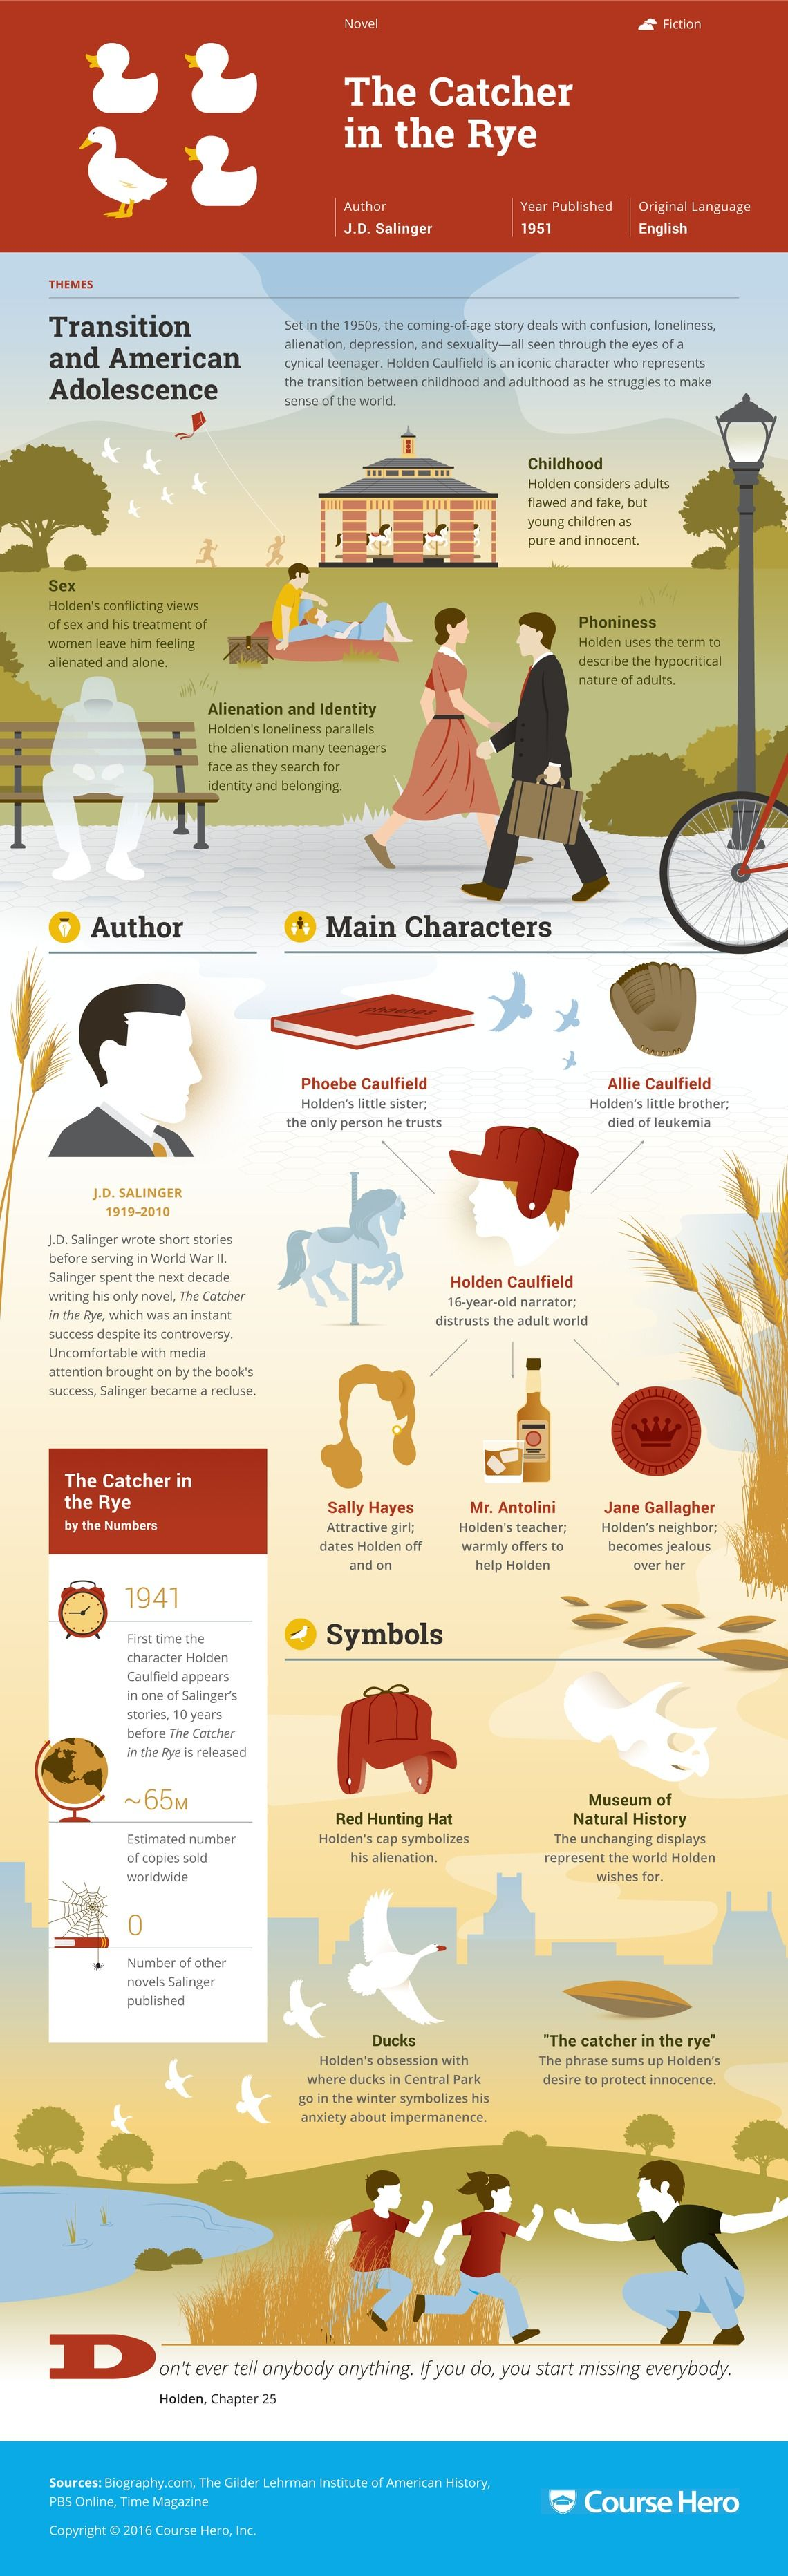 check out this awesome the catcher in the rye infographic from check out this awesome the catcher in the rye infographic from course